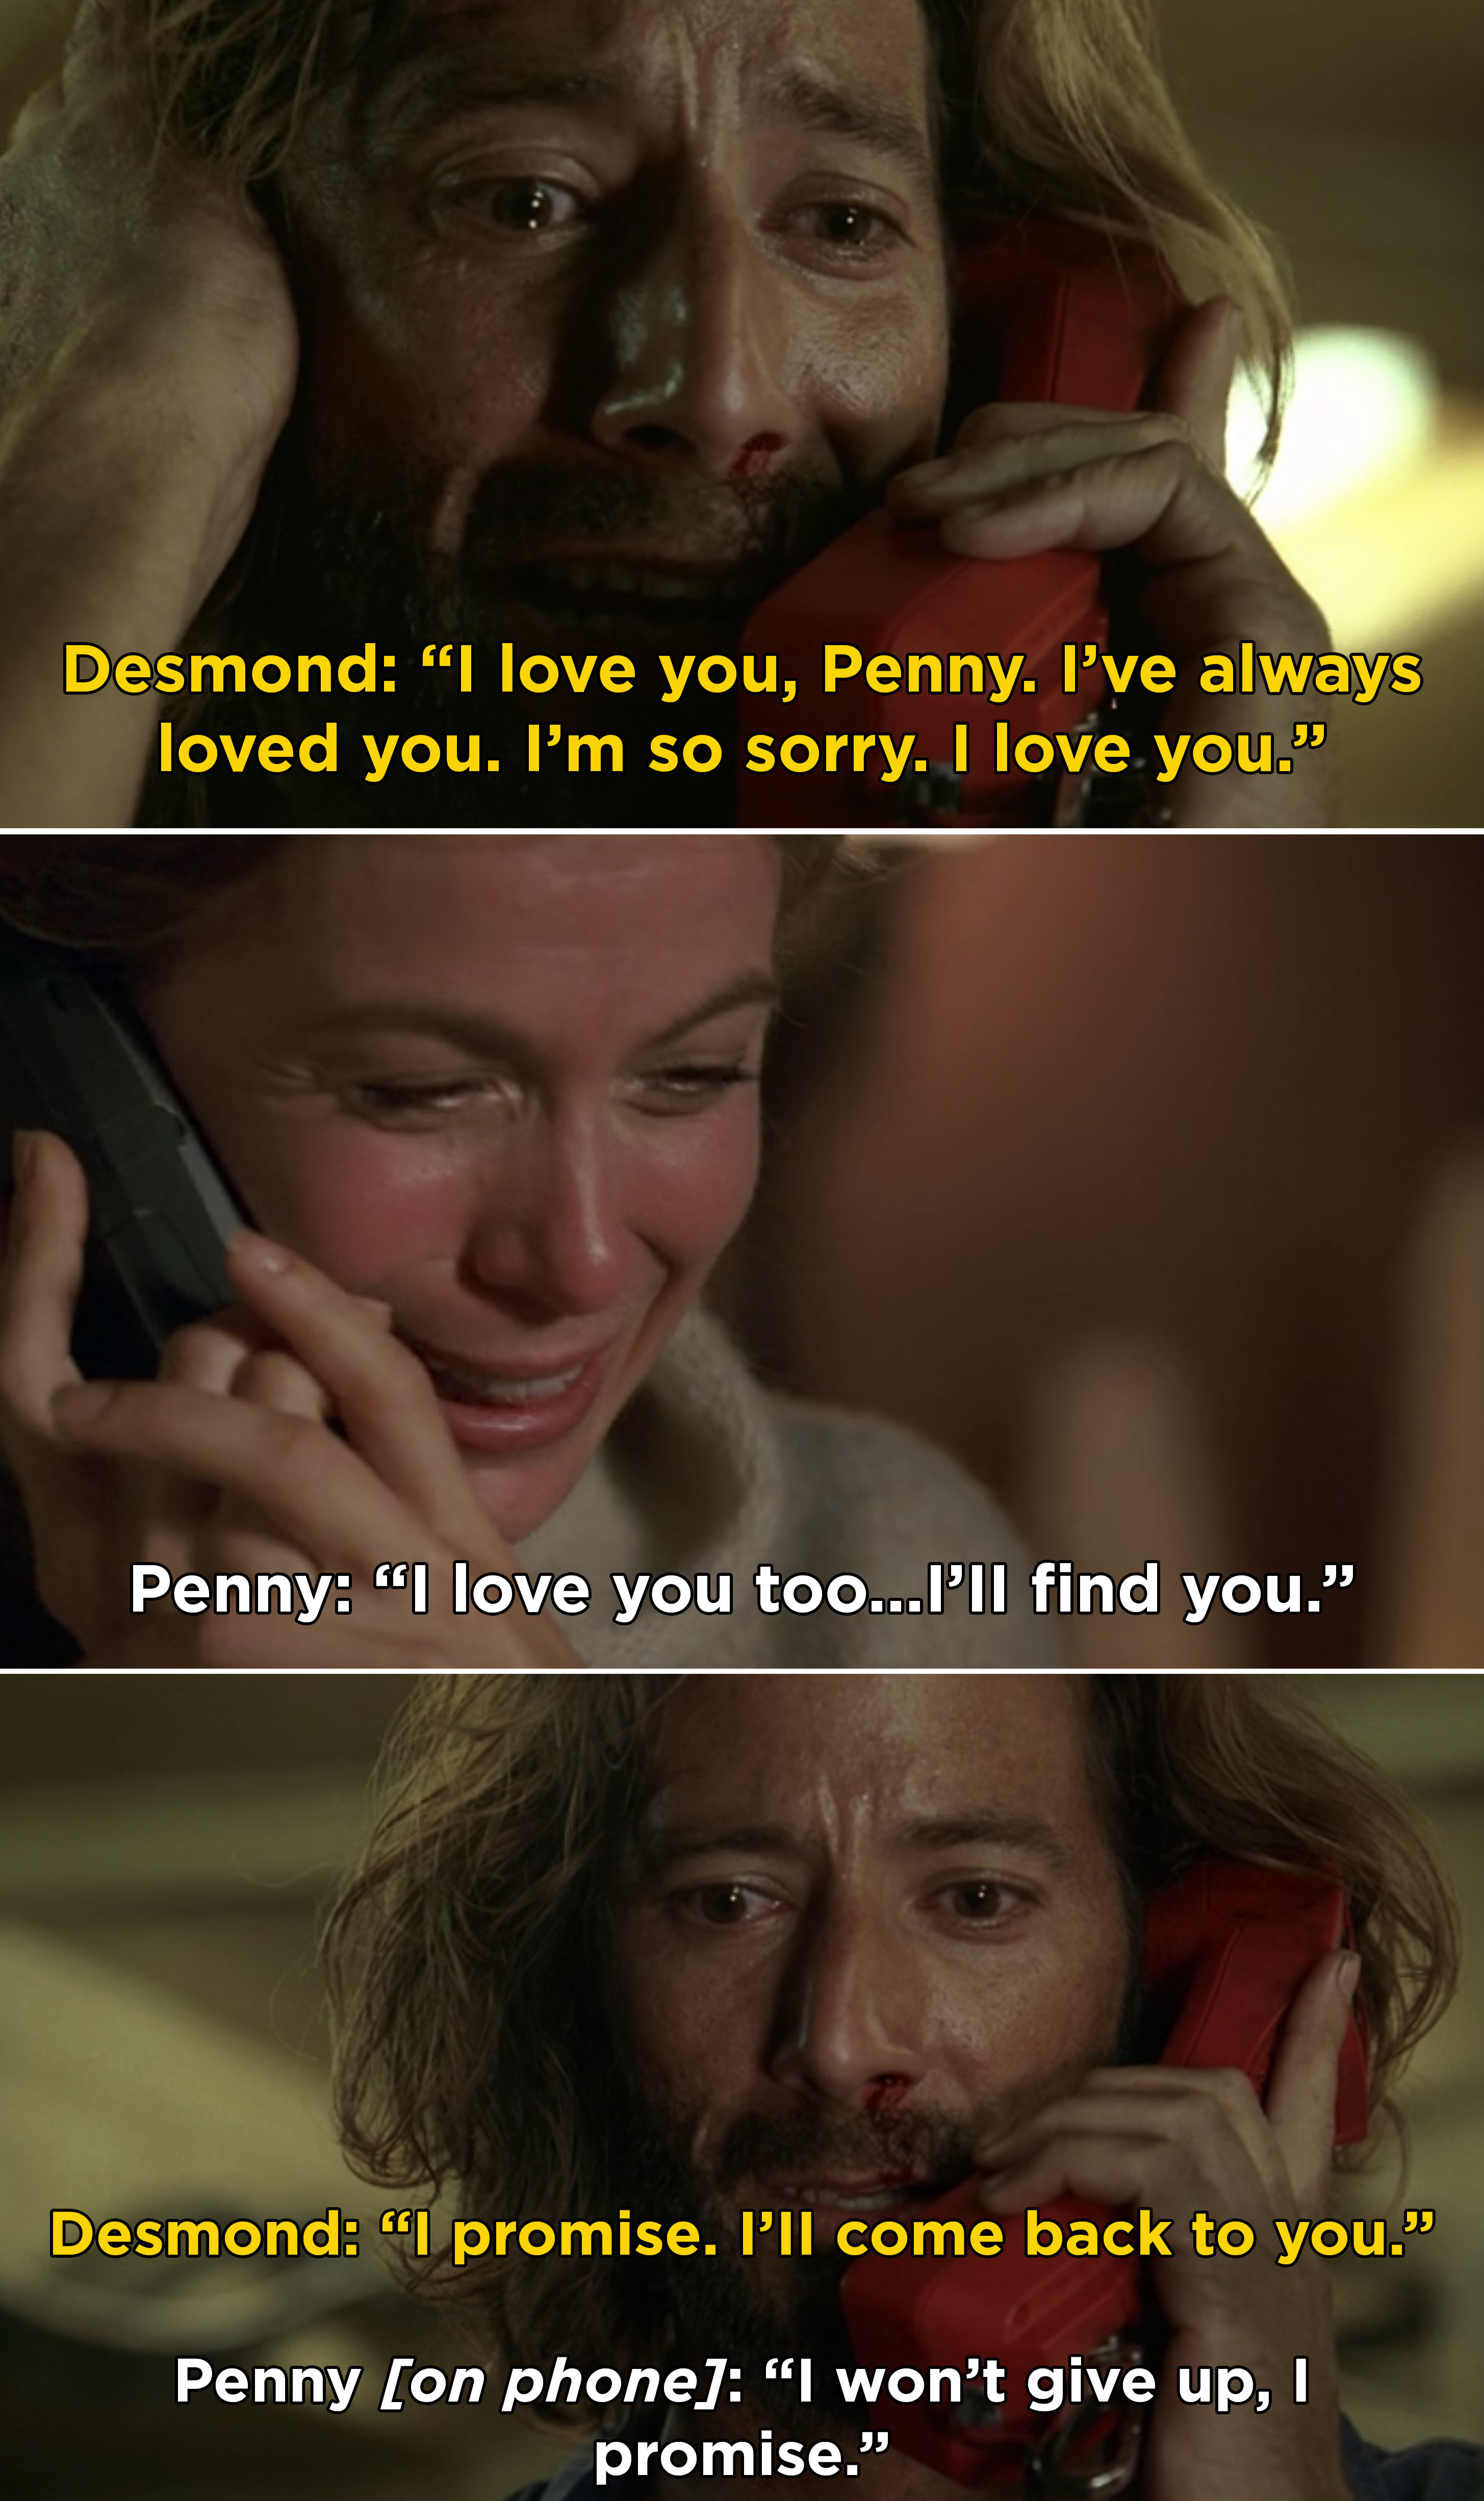 Desmond on the phone with Penny saying that he loves her and will come back to her